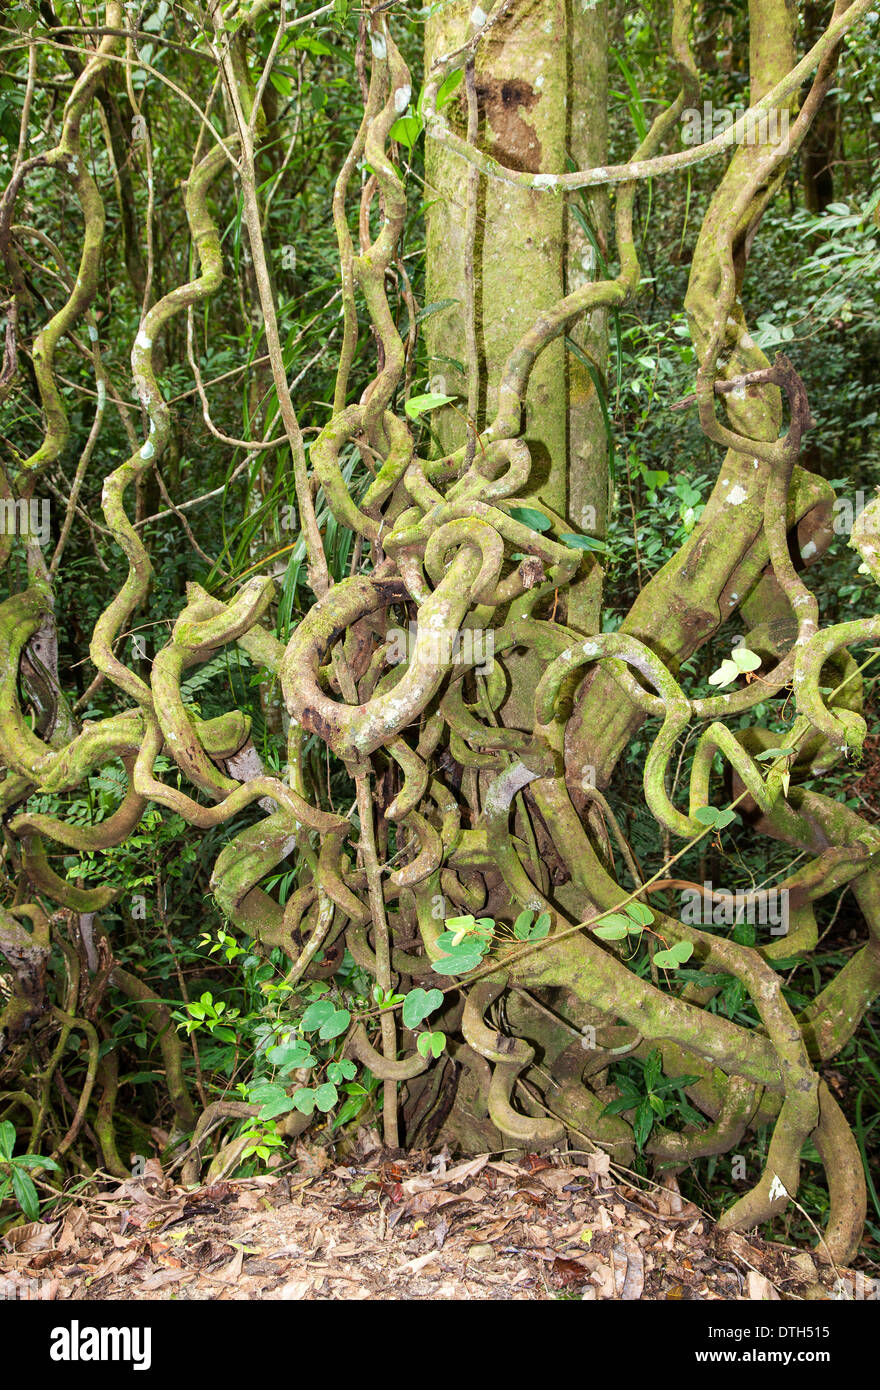 Crazy Roots in Mount Kinabalu Park, Borneo, Malaysia - Stock Image